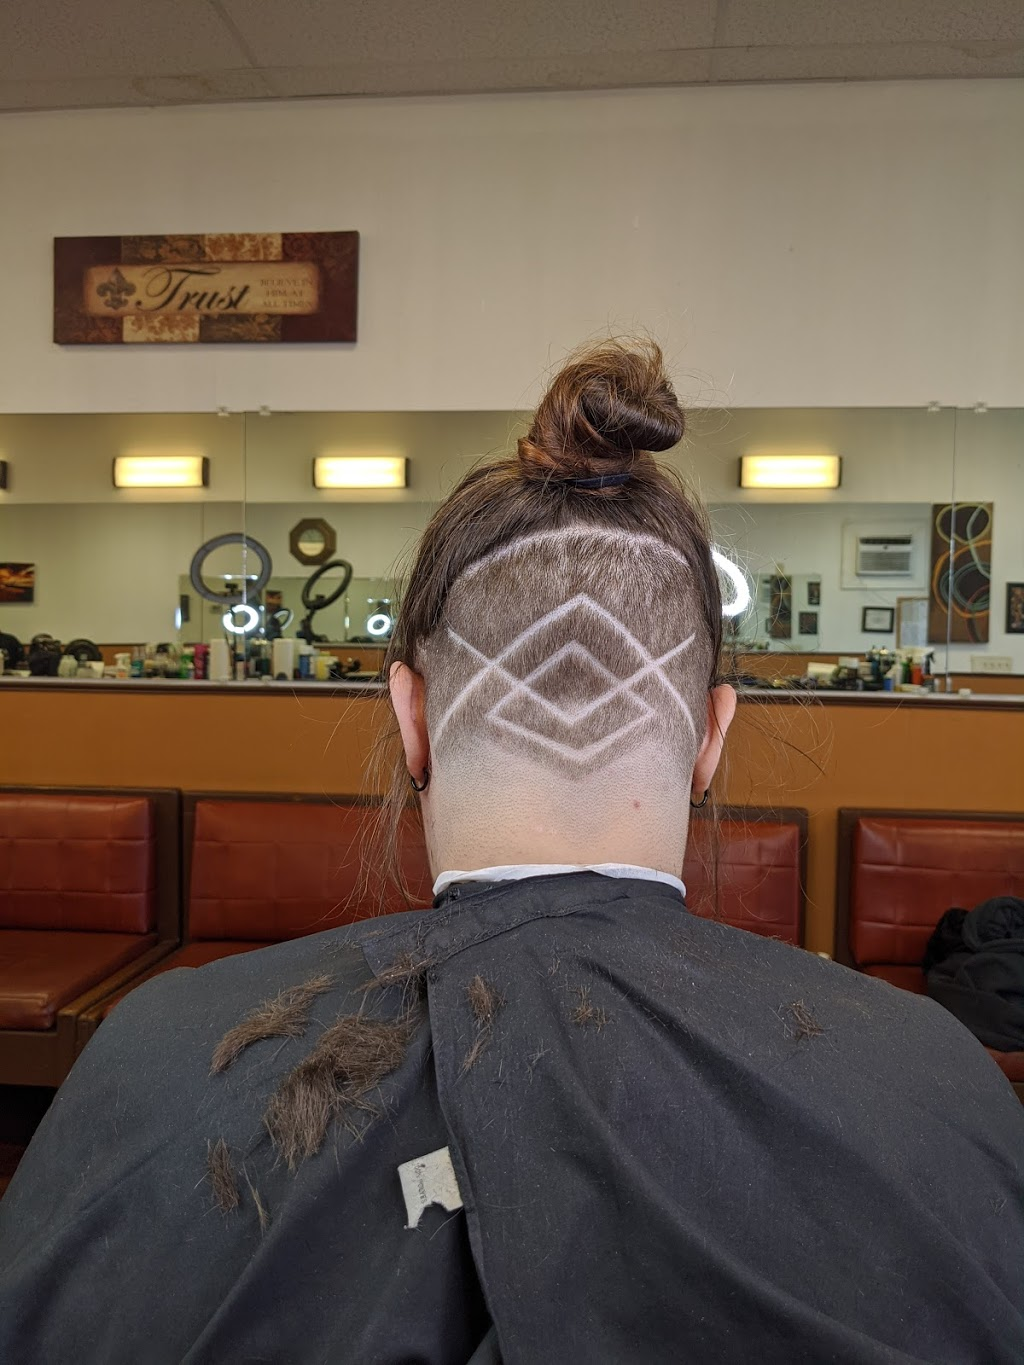 Masters Touch Barbershop LLC - hair care  | Photo 4 of 6 | Address: 31120 Vine St, Willowick, OH 44095, USA | Phone: (216) 298-3993